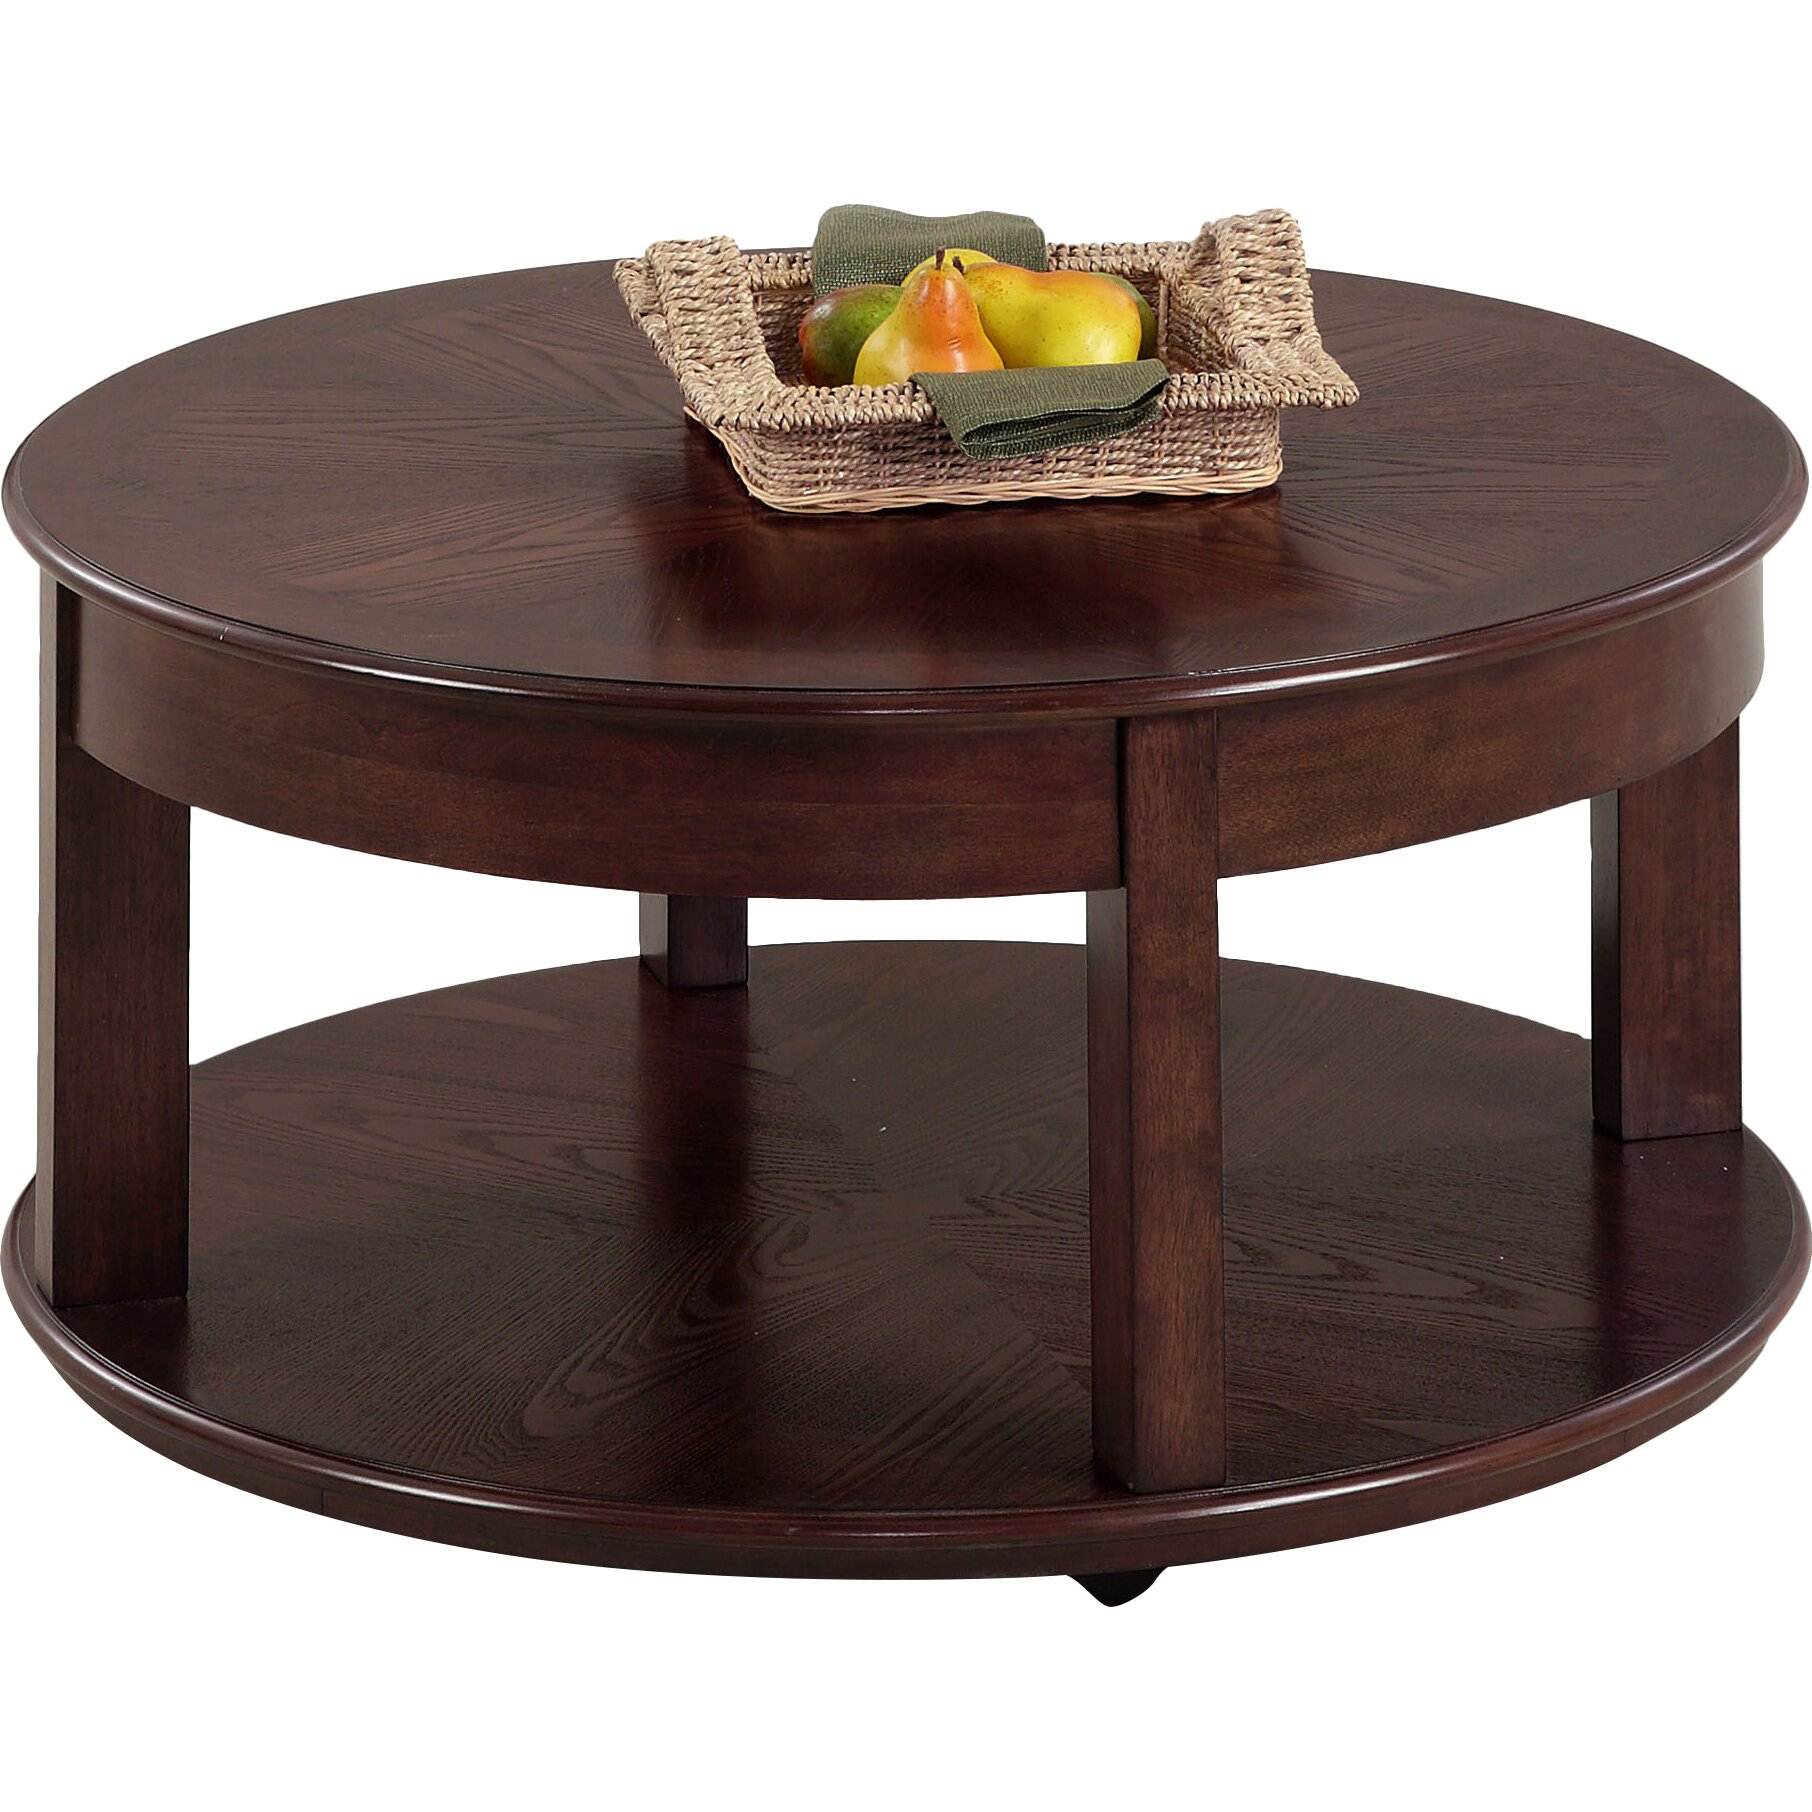 Darby home co wilhoite castered round coffee table for Round coffee table with chairs